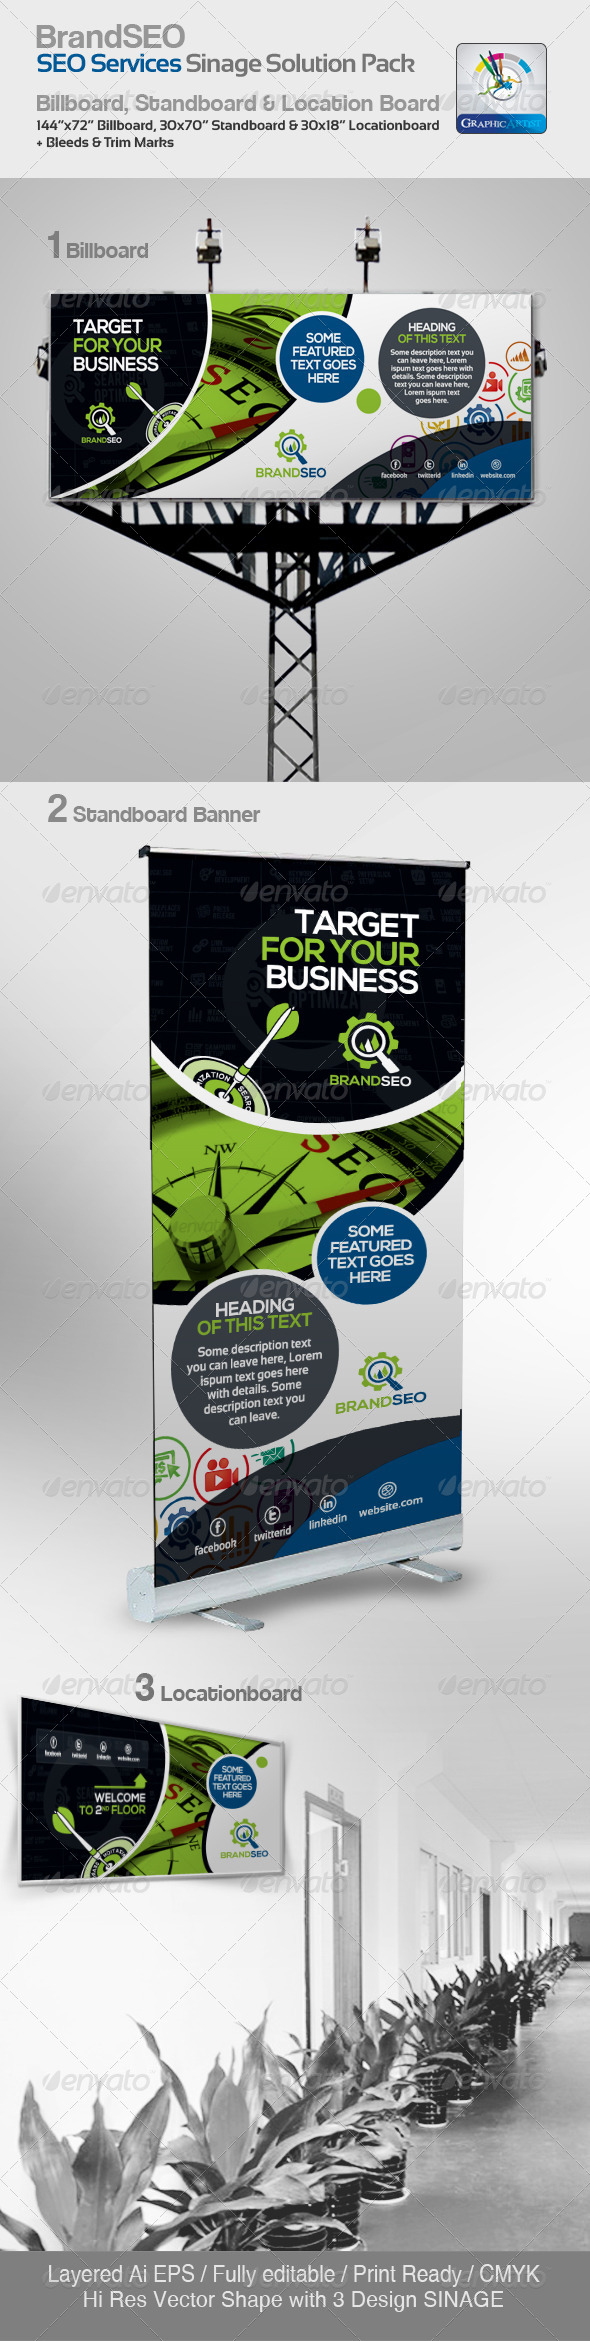 BrandSEO Creative SEO Service Signage Solution